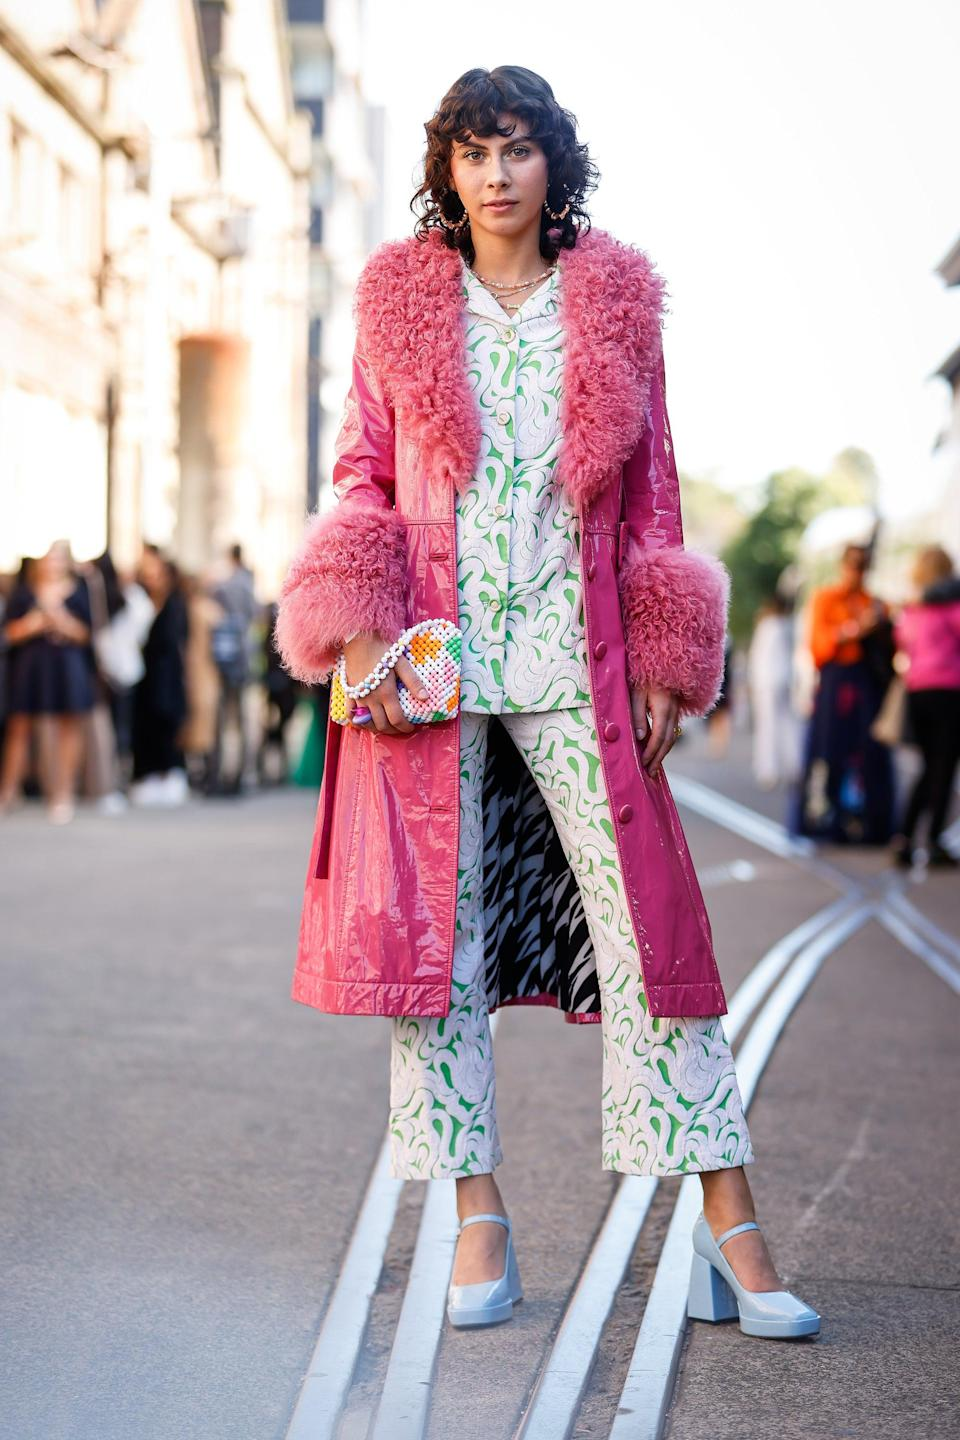 """This look is every viral Instagram trend in one.<br><br><em>Zoe Tapp wearing a <a href=""""https://www.ssense.com/en-us/women/product/saks-potts/pink-foxy-coat/5110771"""" rel=""""nofollow noopener"""" target=""""_blank"""" data-ylk=""""slk:Saks Potts jacket"""" class=""""link rapid-noclick-resp"""">Saks Potts jacket</a>, a <a href=""""https://www.susanalexandra.com/collections/bags/products/trippy-moo-bag"""" rel=""""nofollow noopener"""" target=""""_blank"""" data-ylk=""""slk:Susan Alexandra bag"""" class=""""link rapid-noclick-resp"""">Susan Alexandra bag</a>, and <a href=""""https://lamanso.shop/products/fluordreaaaam"""" rel=""""nofollow noopener"""" target=""""_blank"""" data-ylk=""""slk:La Manso rings"""" class=""""link rapid-noclick-resp"""">La Manso rings</a>.</em><span class=""""copyright"""">Photo: Hanna Lassen/Getty Images.</span>"""